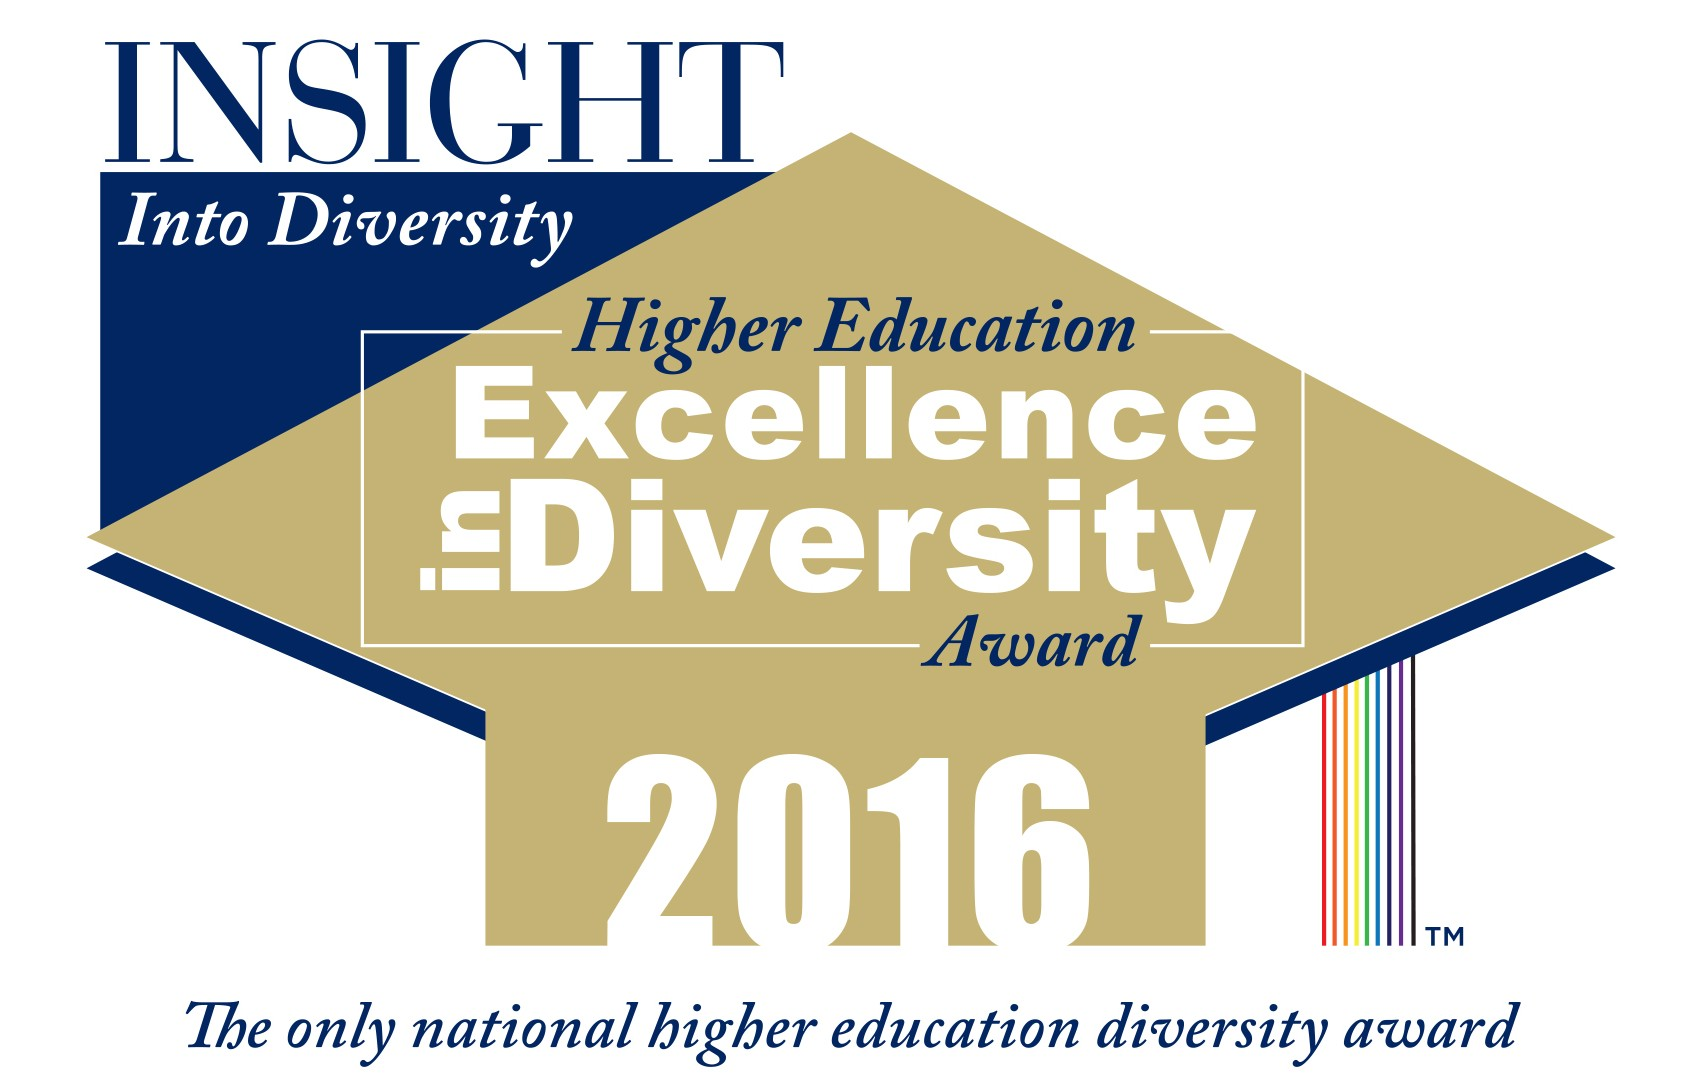 Diversity In Higher Education Quotes The Most Important 6 Things